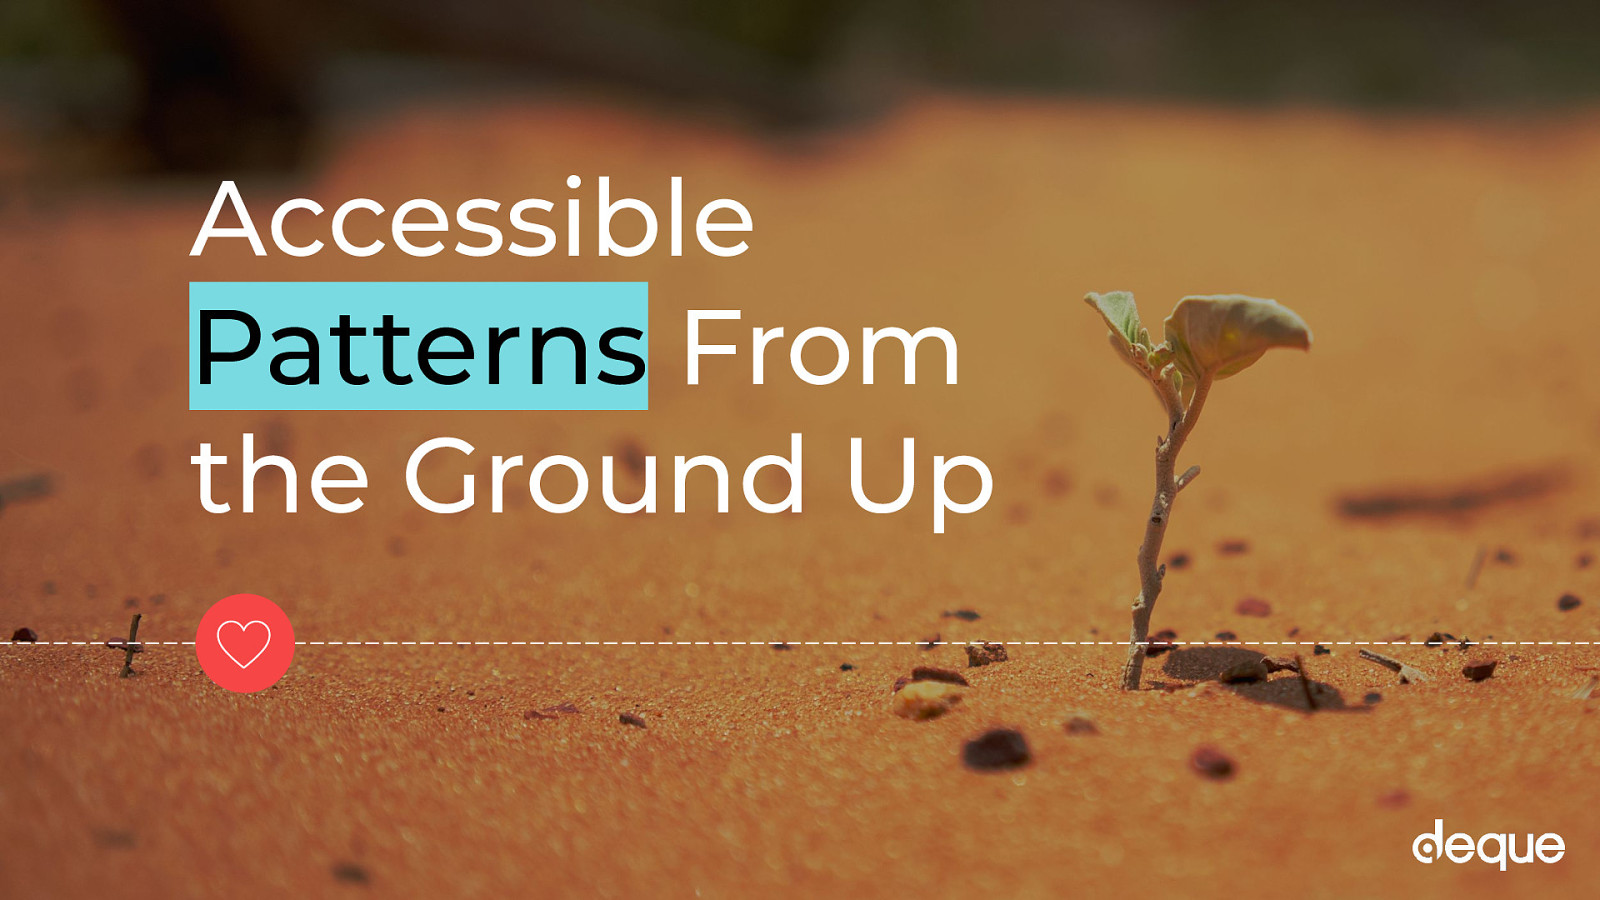 Accessible Patterns from the Ground Up